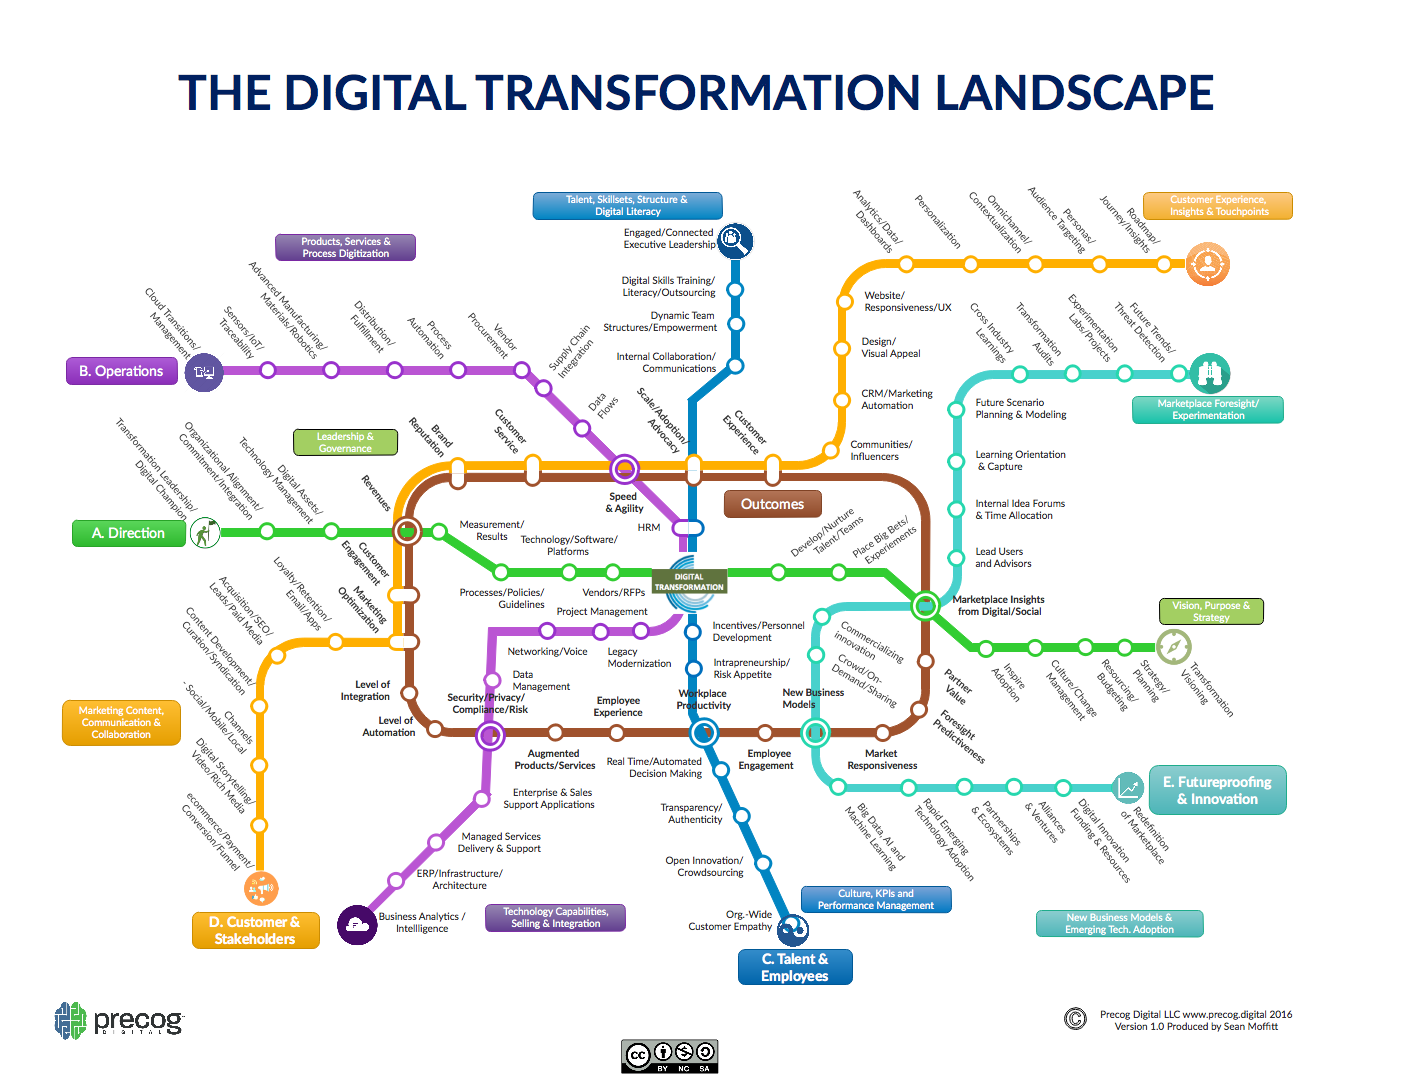 The Digital Transformation Landscape